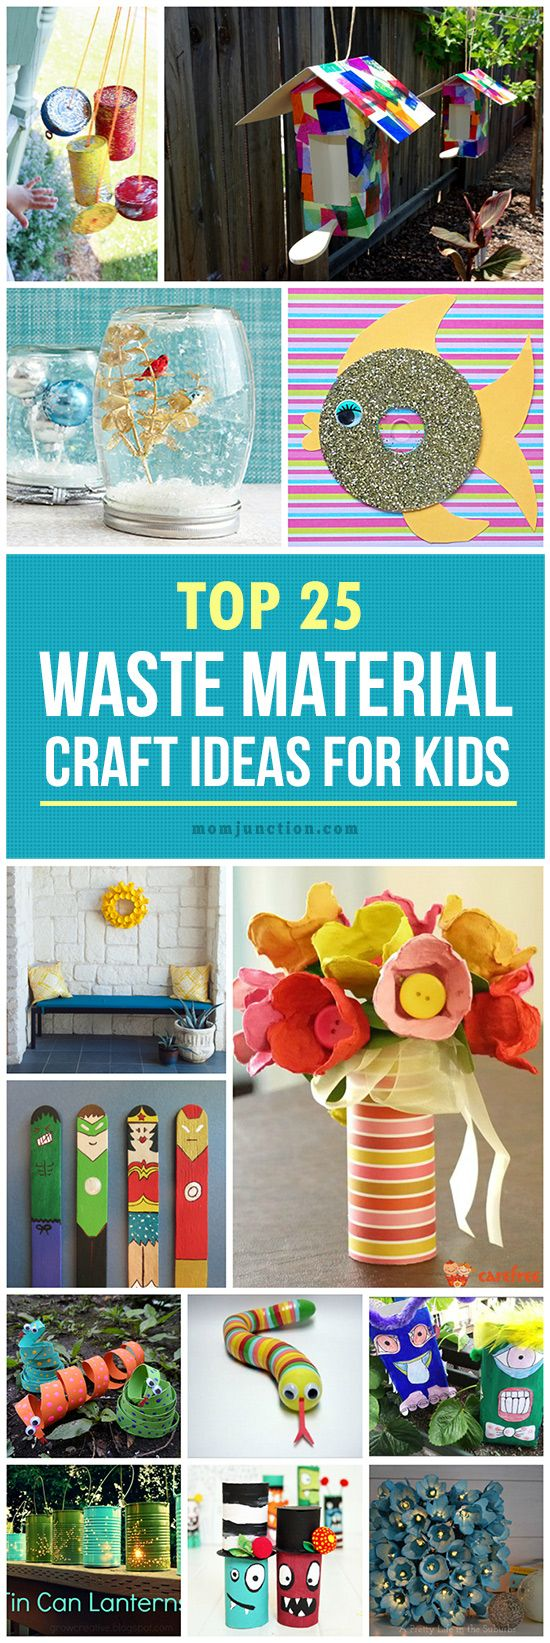 Craft Ideas For Kids Best Out Of Waste Part - 49: 25 Creative Out-Of-Waste Material Crafts For Kids